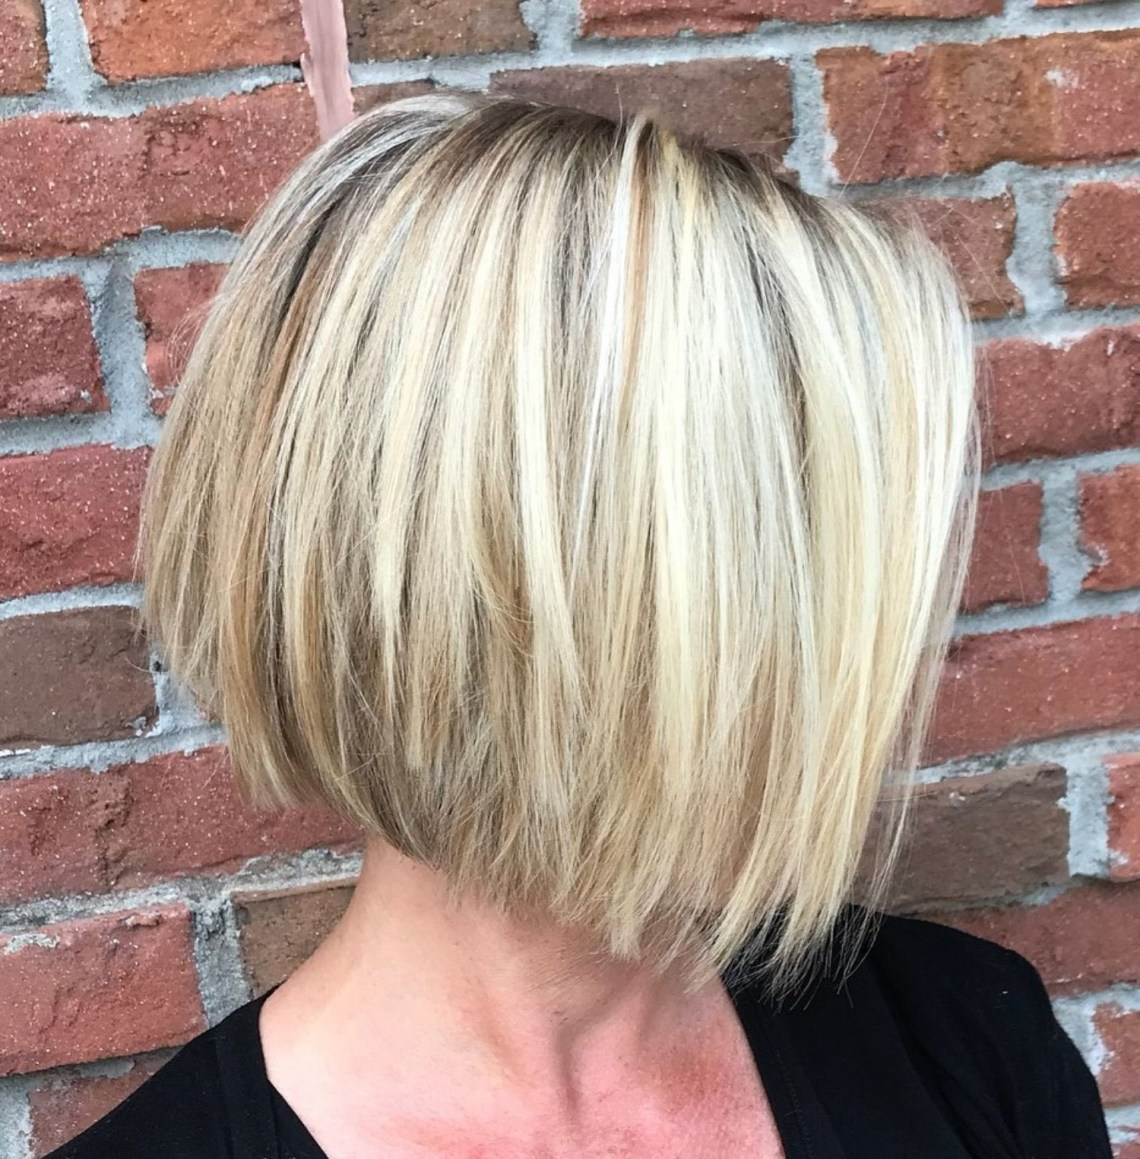 Slanted Jaw Length Bob For Straight Hair | Edgy Bob Haircuts 40+ Stylish Medium Length Choppy Bob Hairstyles